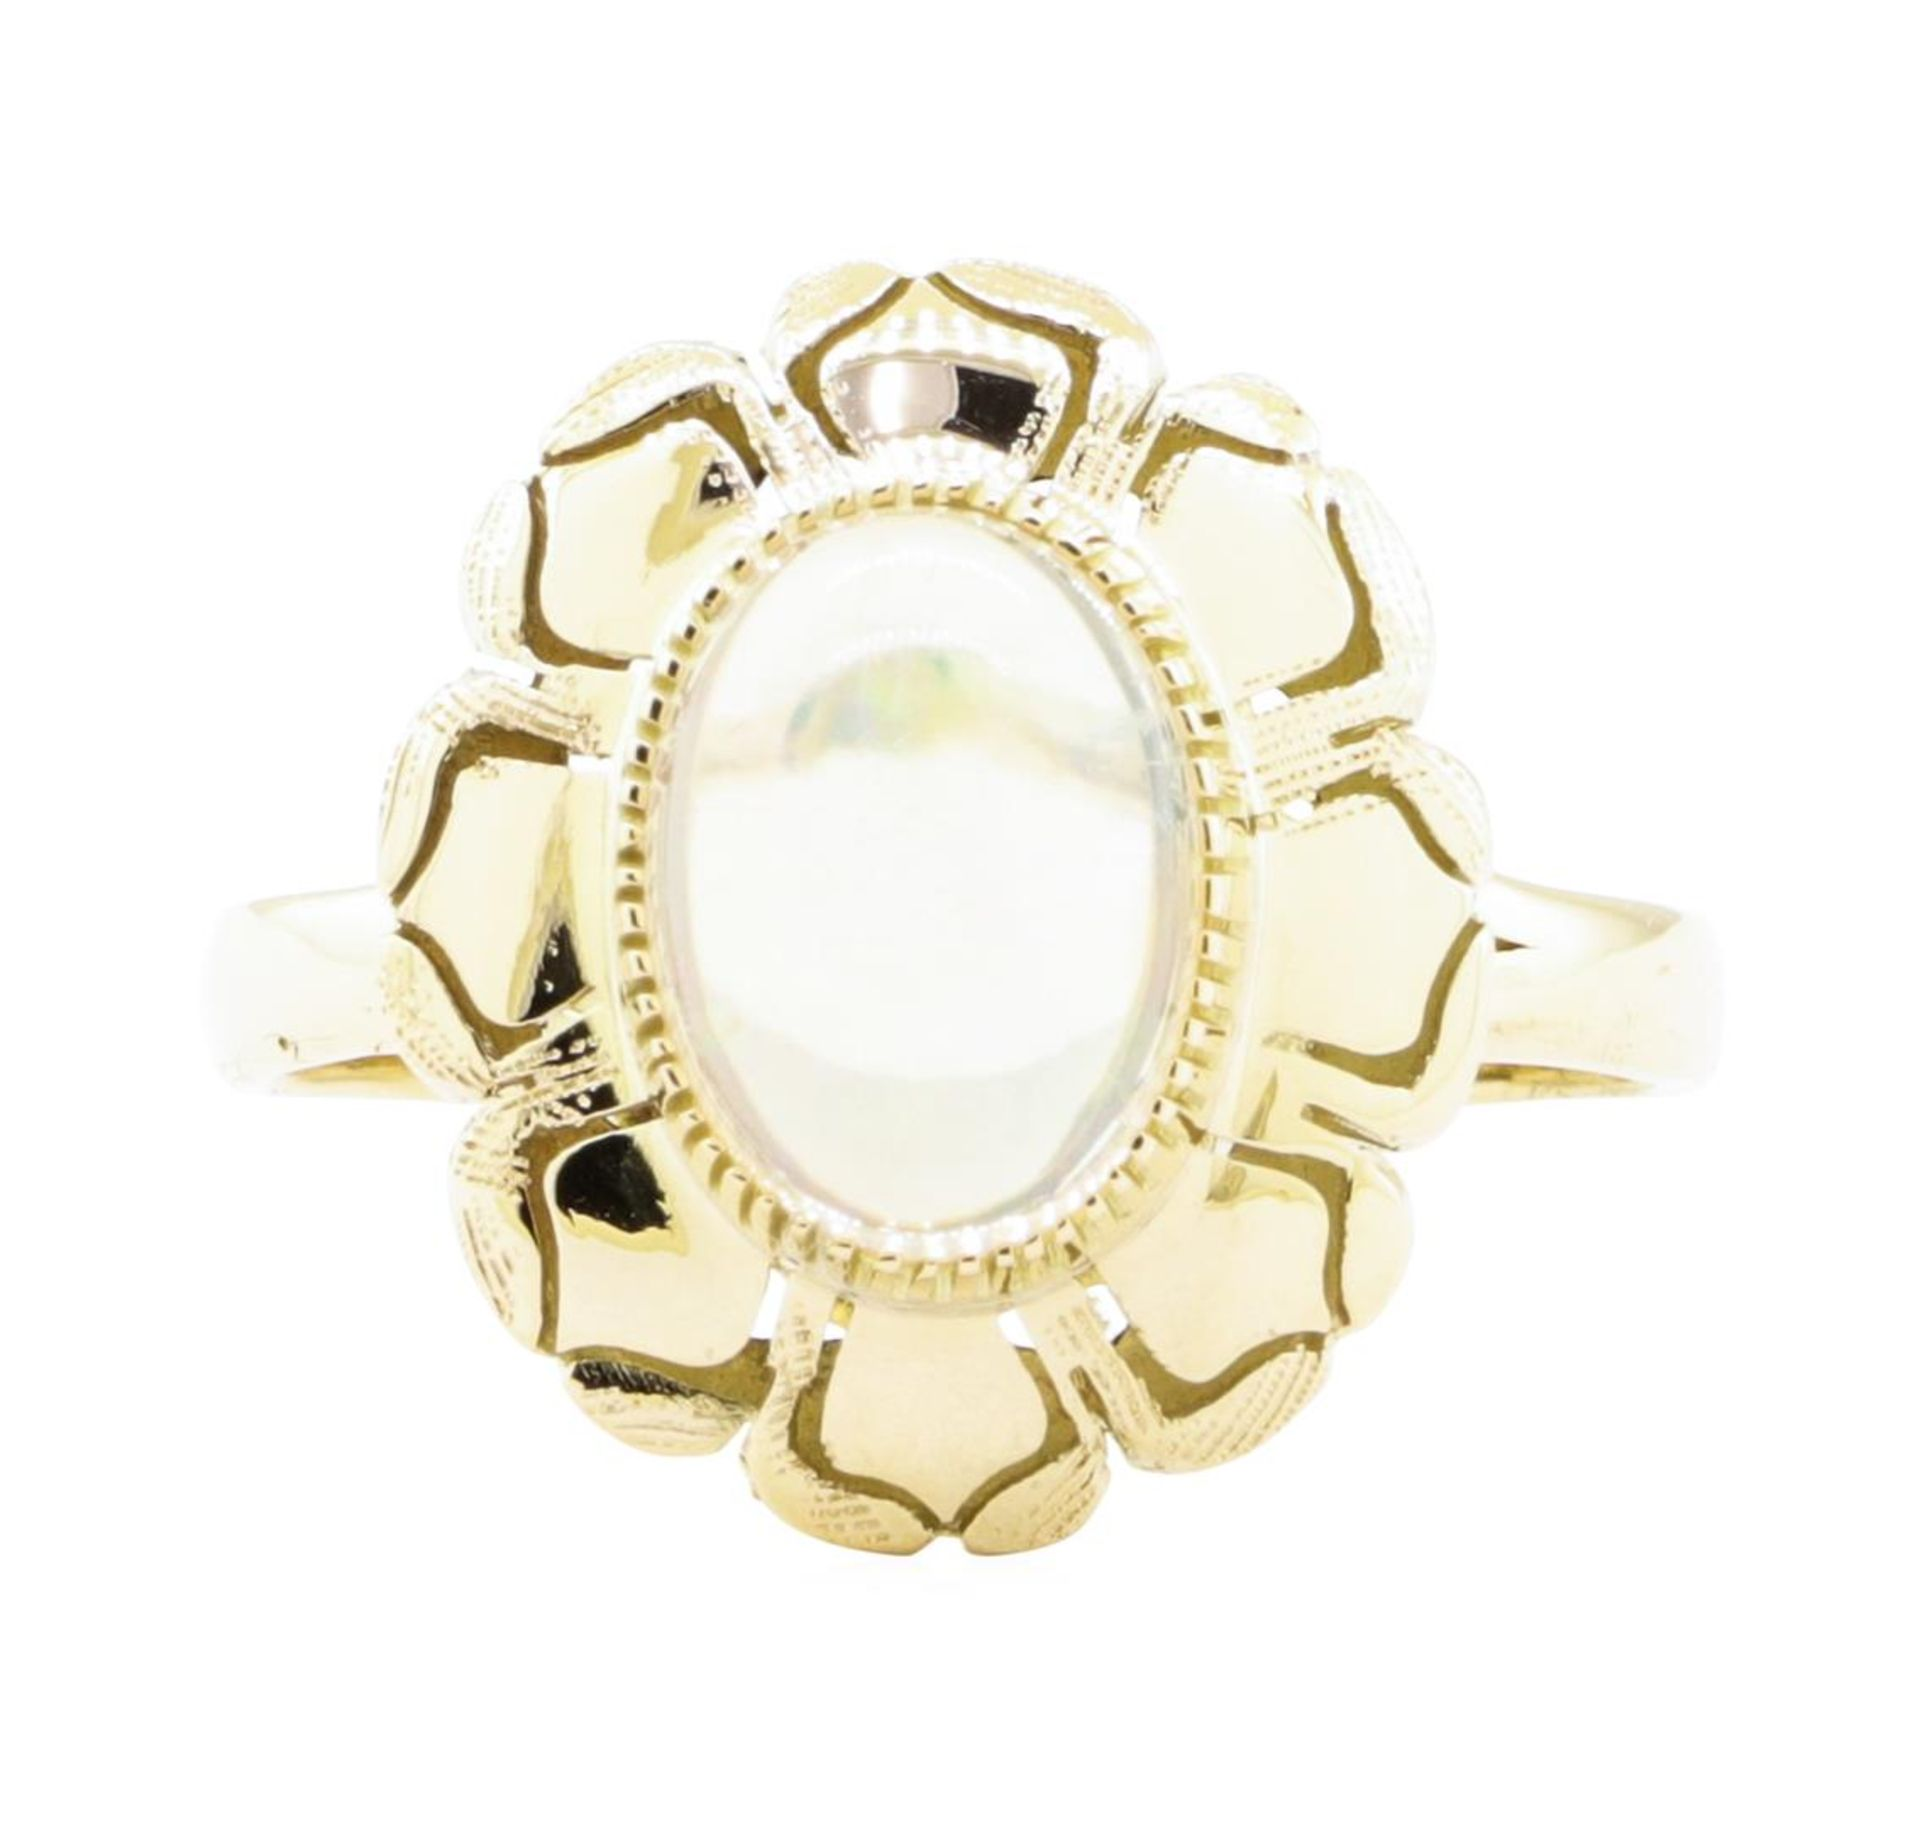 2.50 ct Opal Ring - 14KT Yellow Gold - Image 2 of 4